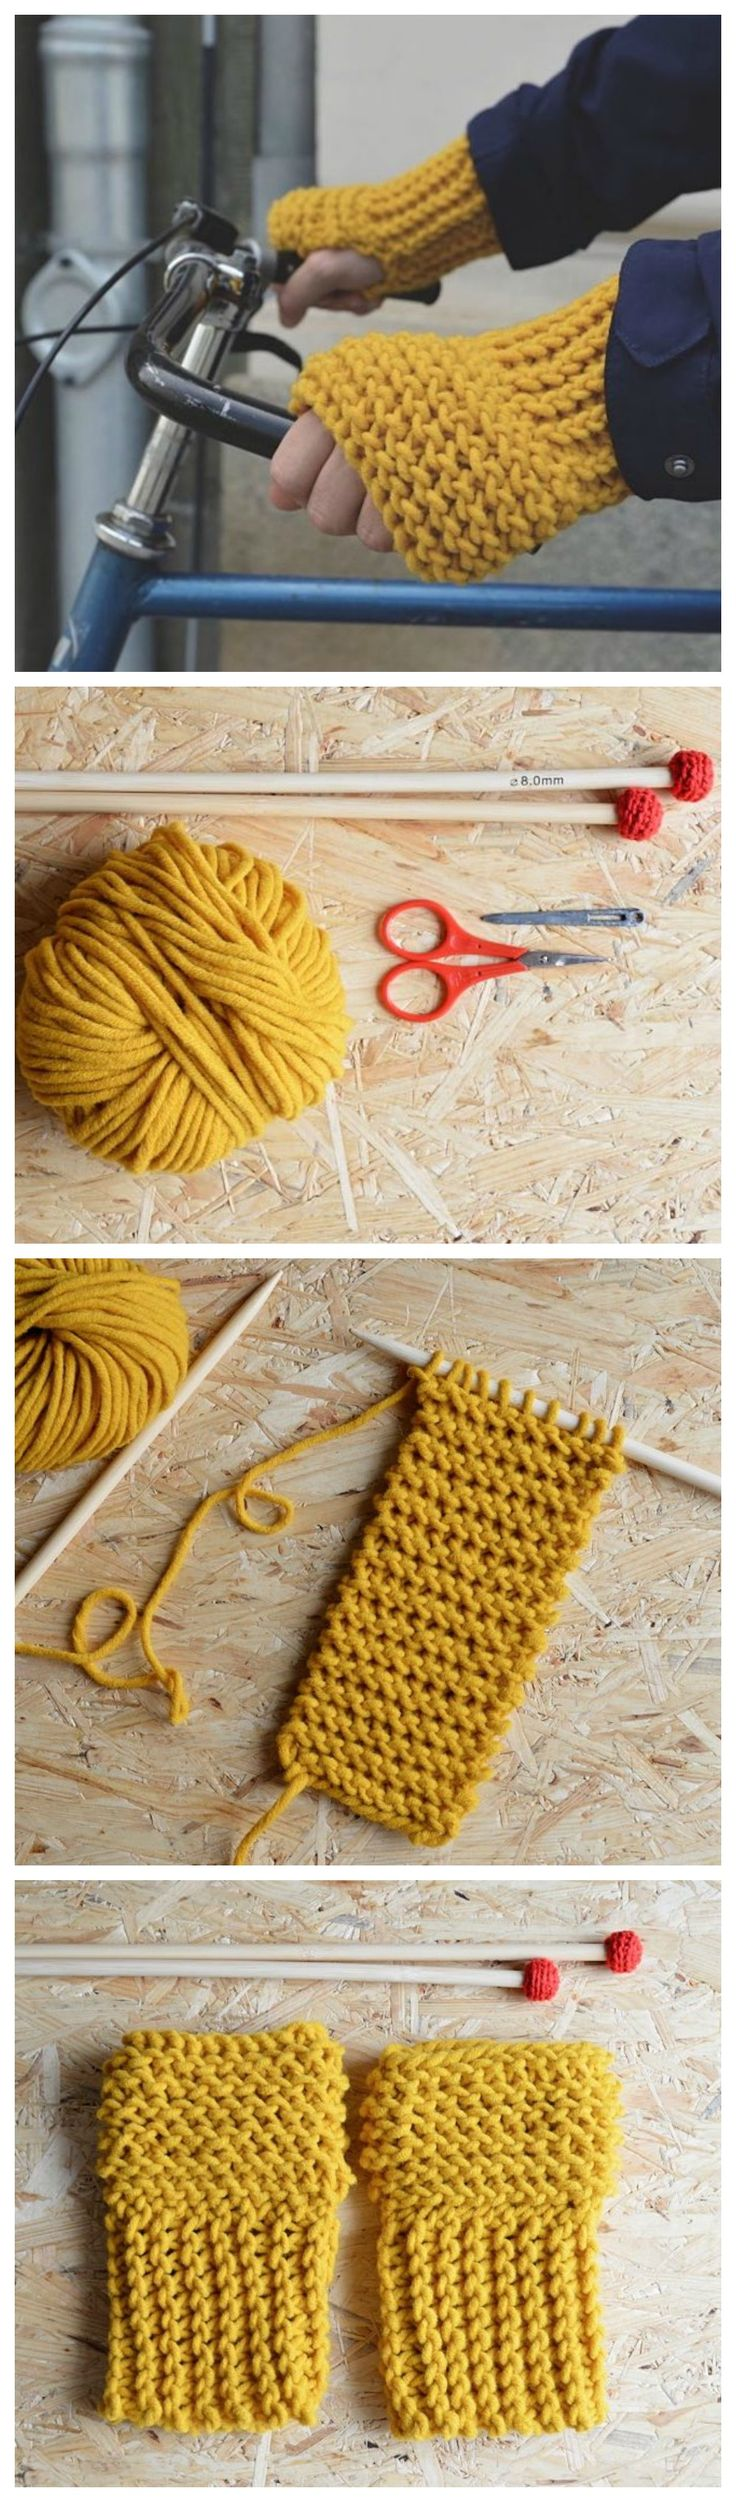 ♥ Kostenlose Strickanleitung // Deutsch // Kuschelige Stulpen stricken // free knitting tutorial: how to knit comfy wrist warmer ♥